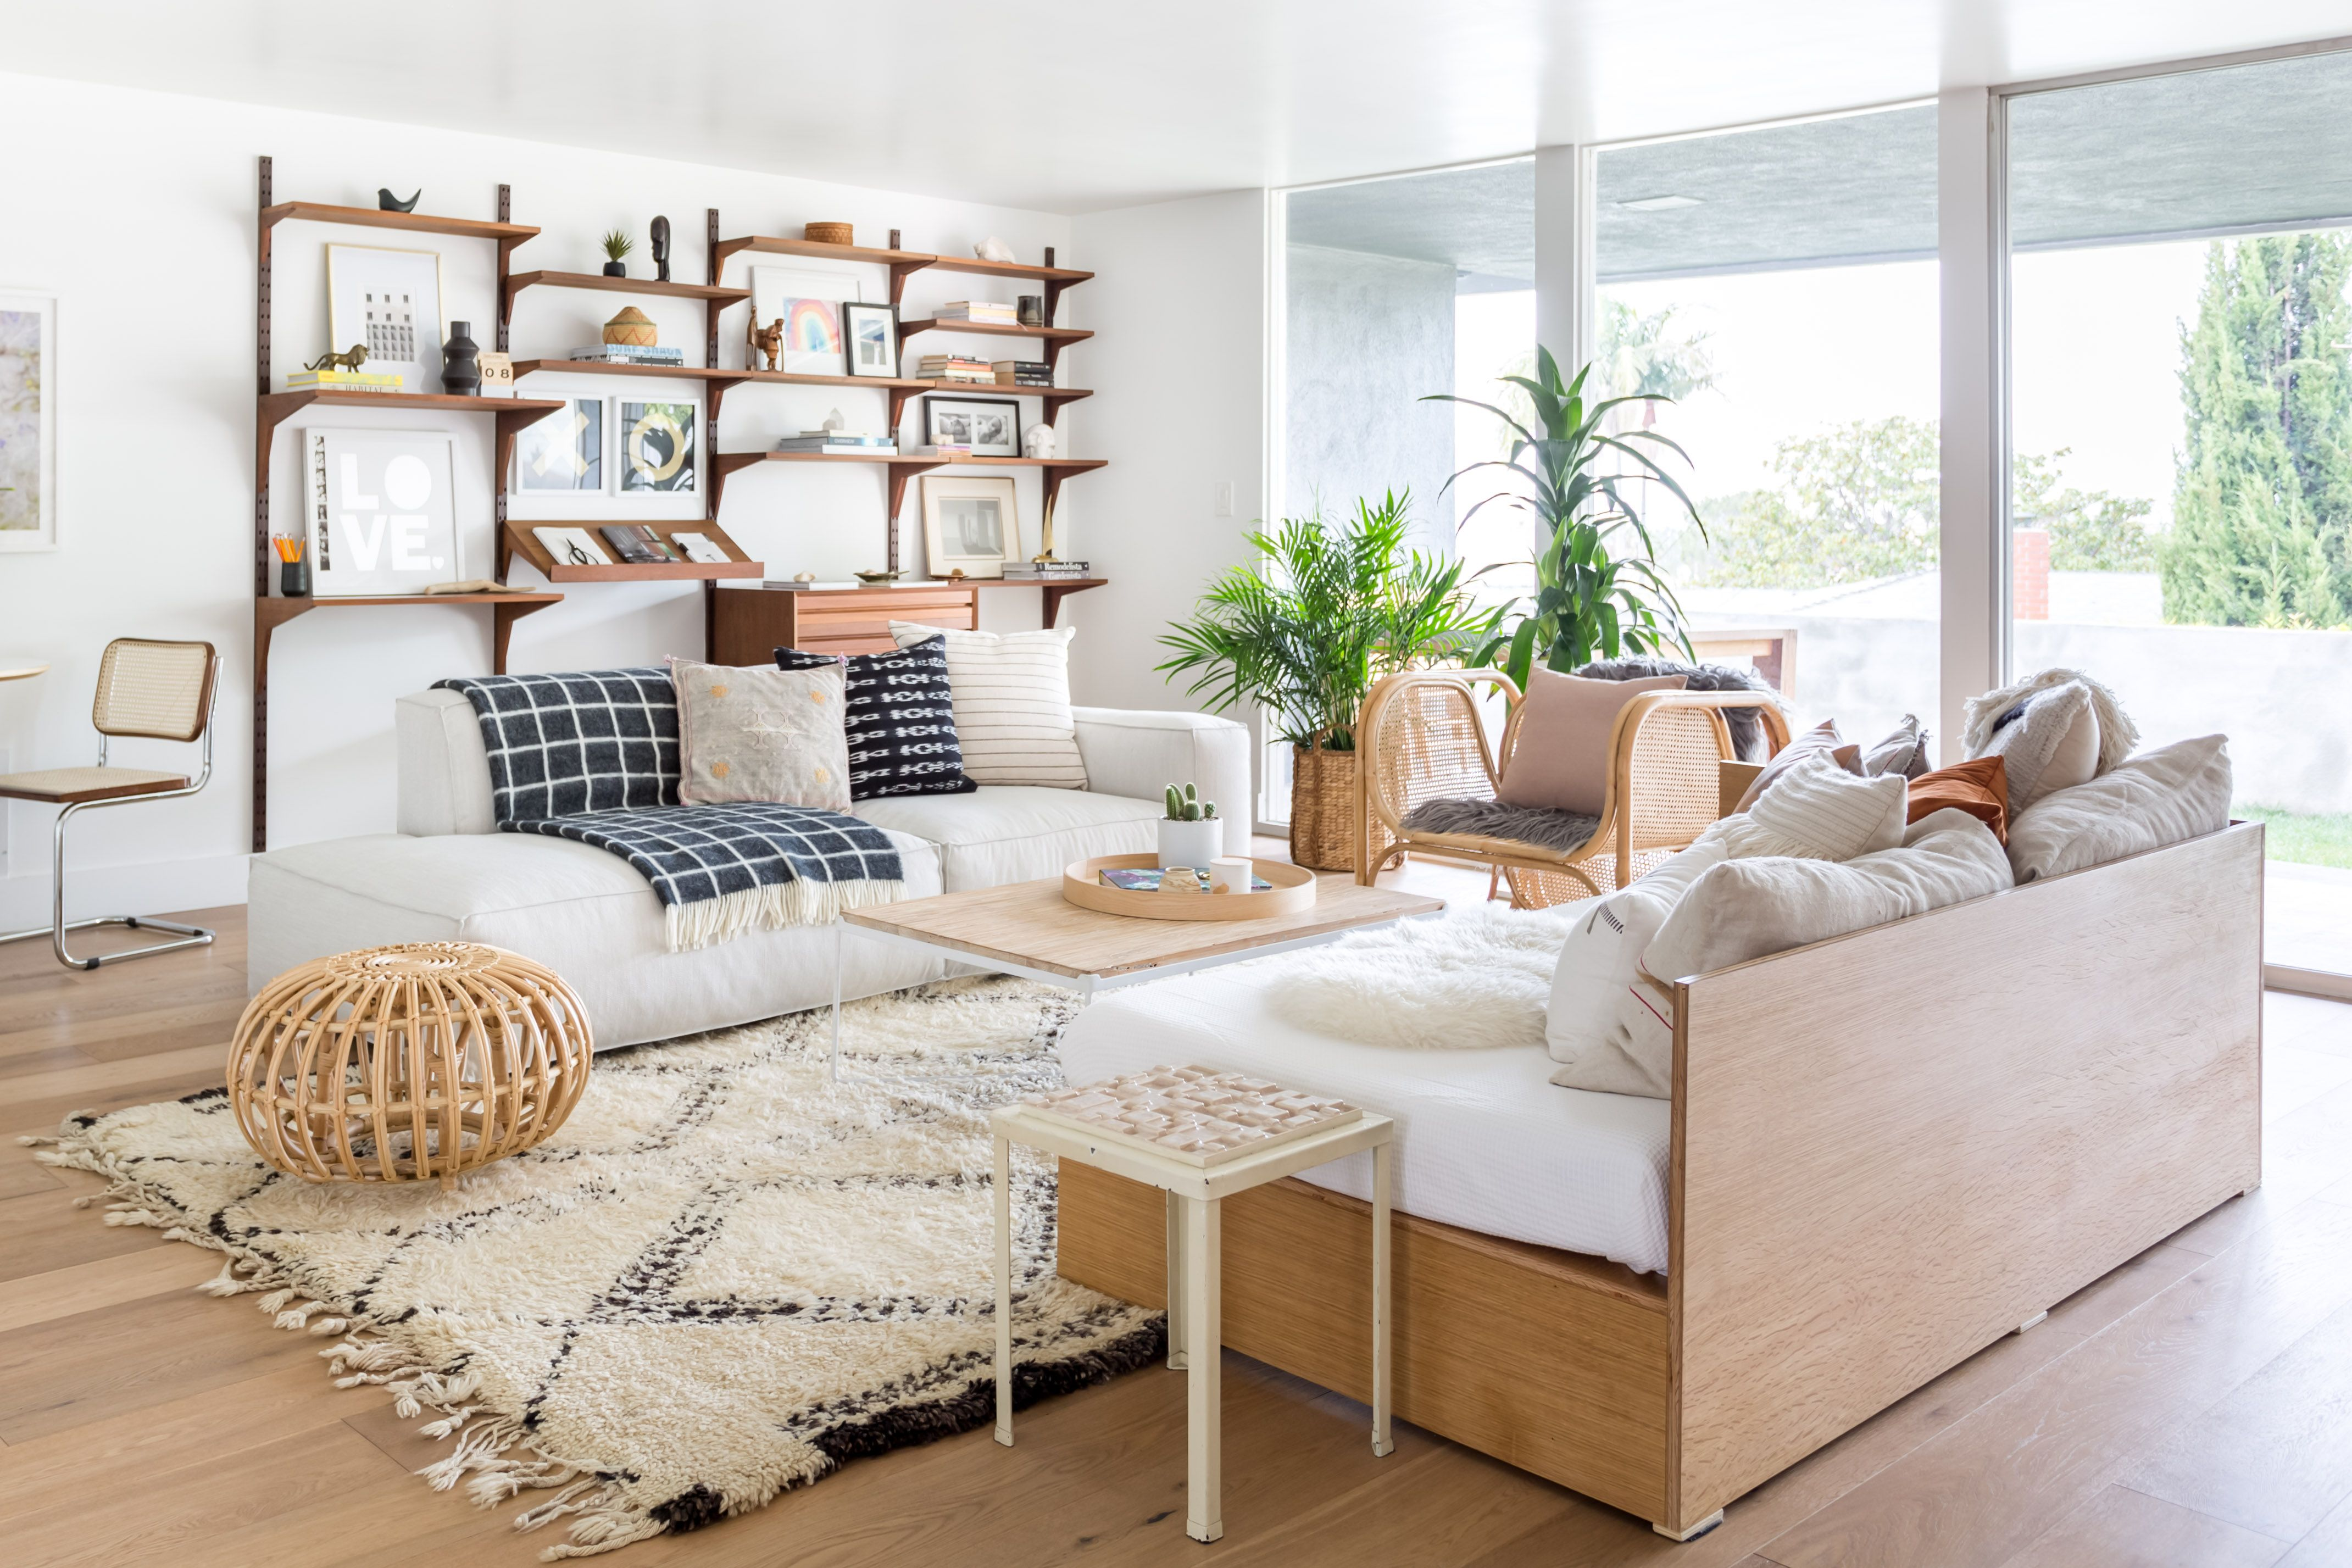 We Re Obsessed With Scandifornian Style An Interior Design Trend You Already Know And Probably Love Hunker Interior Design Modular Sofa Interior Design Trends Homemade room decoration style trend